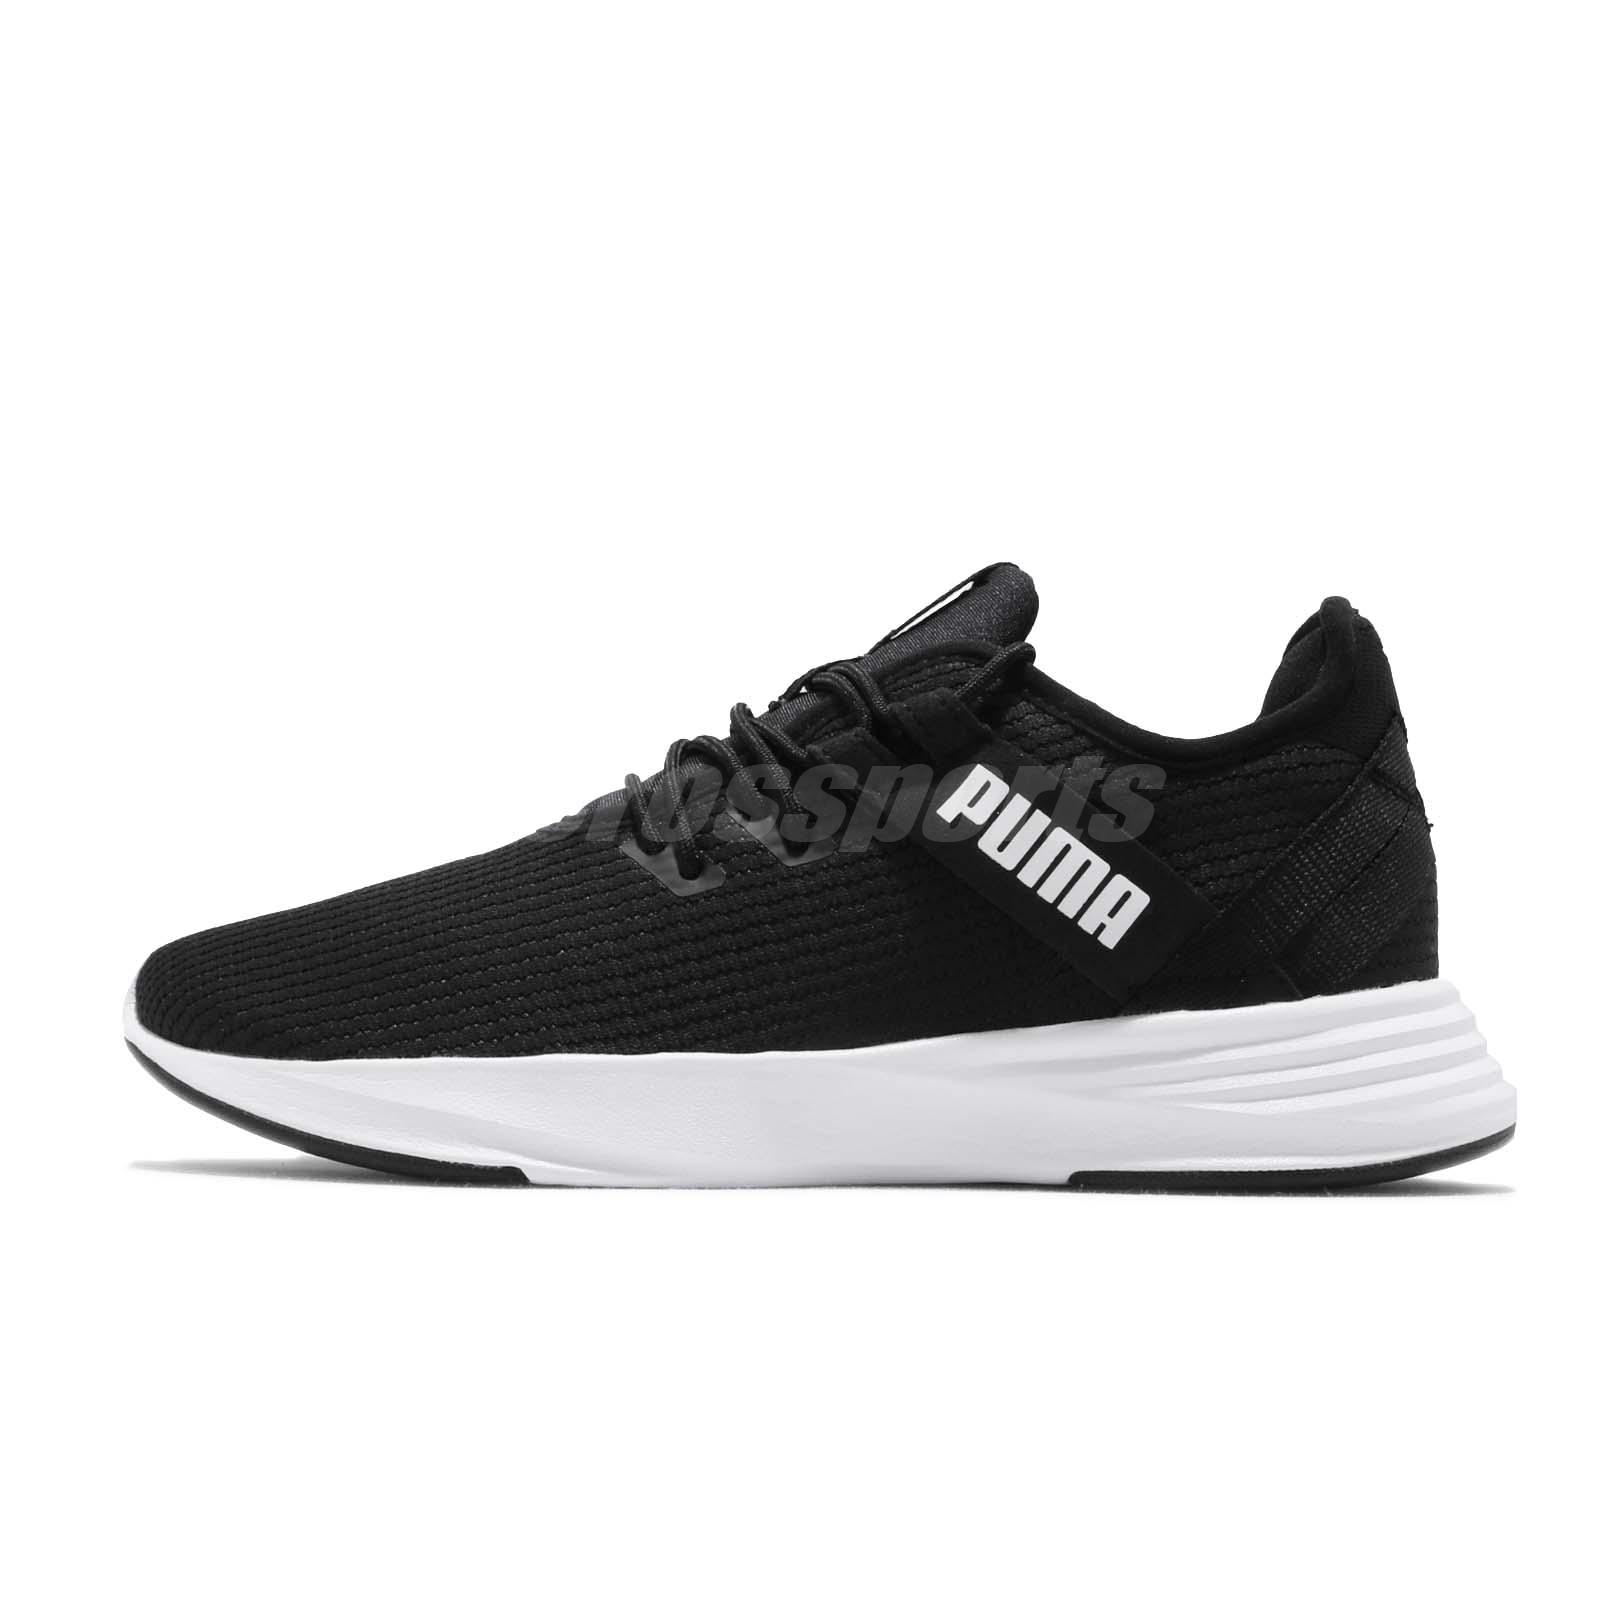 3d2e3b53 Details about Puma Radiate XT Wns Black White Women Running Training Shoes  Sneakers 192237-01